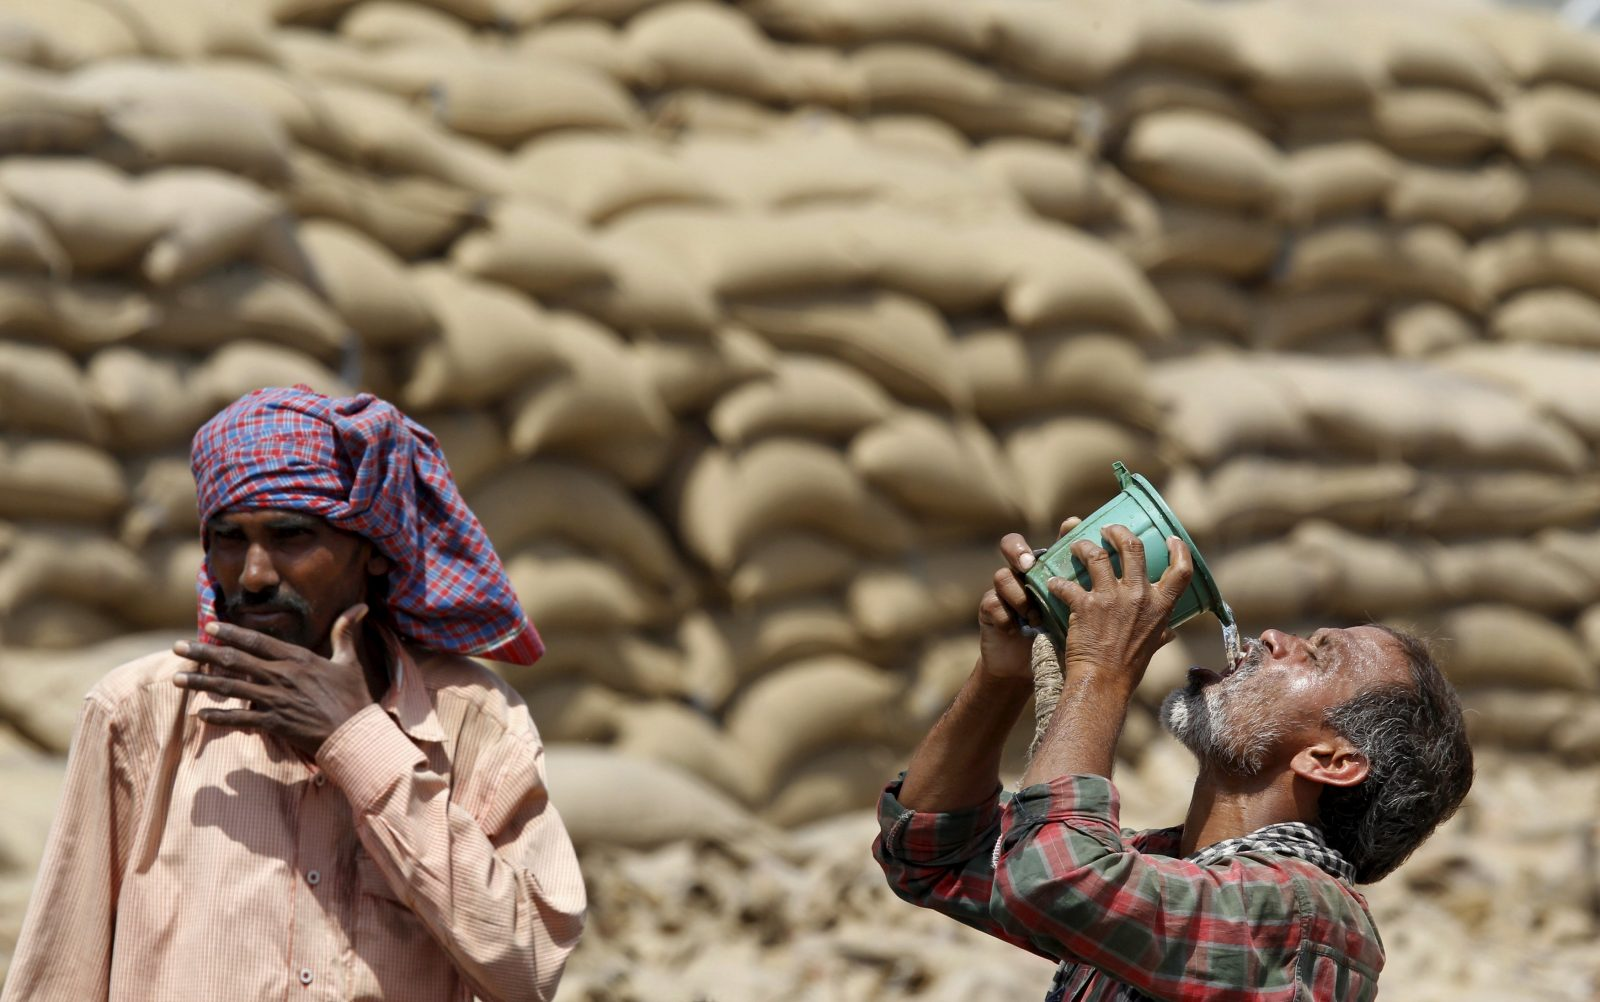 A labourer drinks water as another looks on, on a hot summer day at a grain market in Chandigarh, India April 19, 2016. REUTERS/Ajay Verma - RTX2AMML